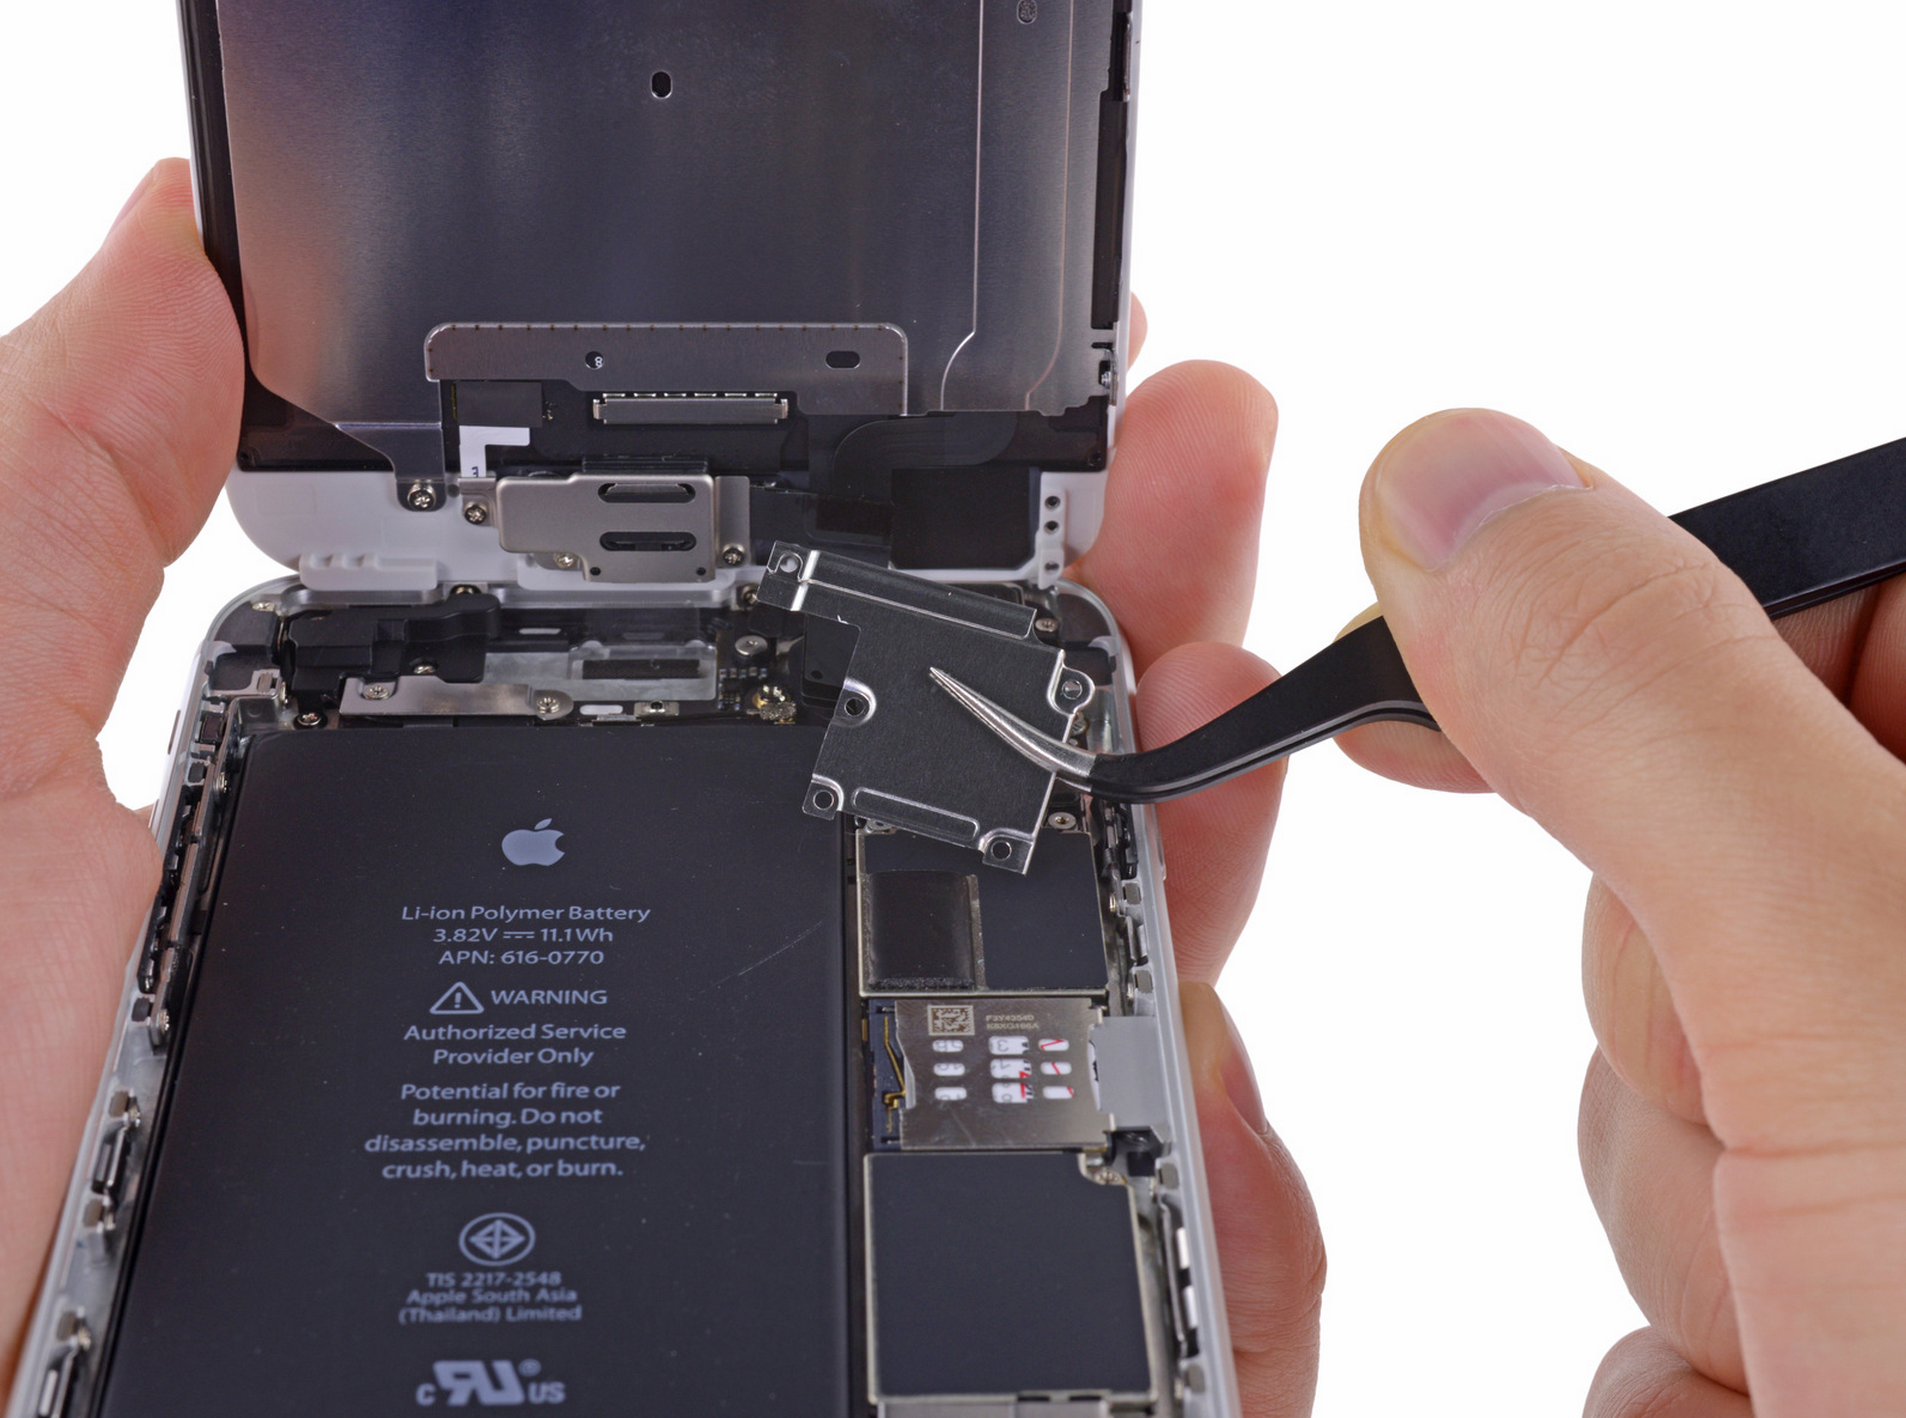 iPhone 6 repairs by iPhonefixed